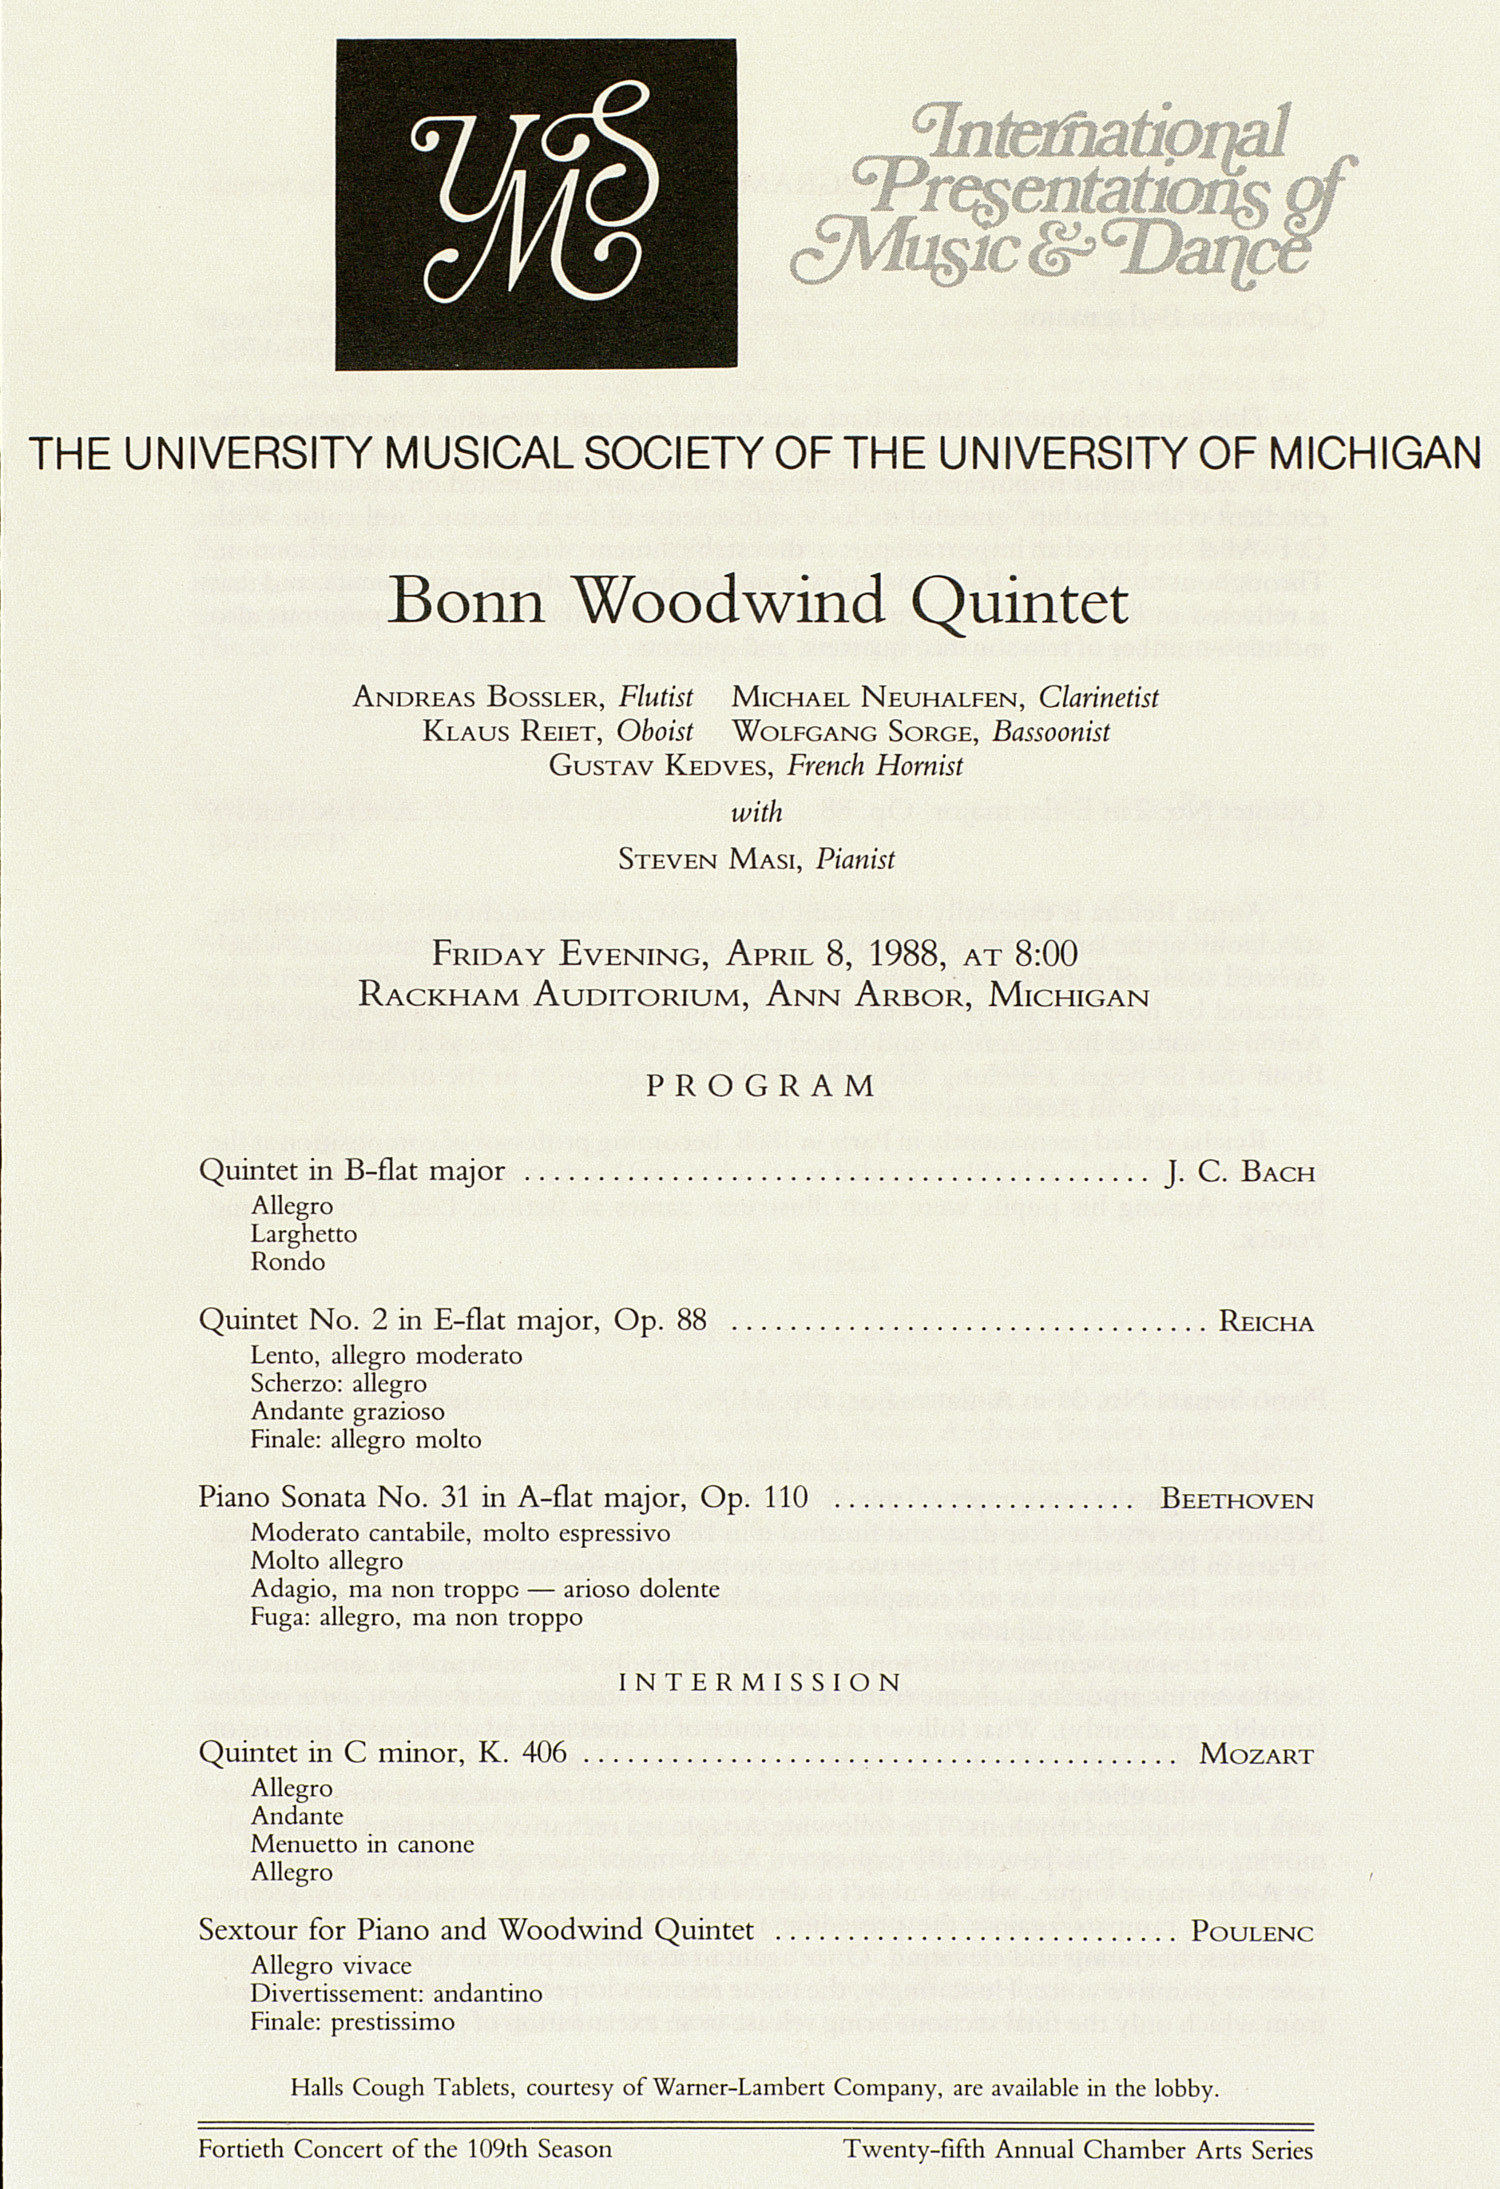 UMS Concert Program, April 8, 1988: Bonn Woodwind Quintet --  image